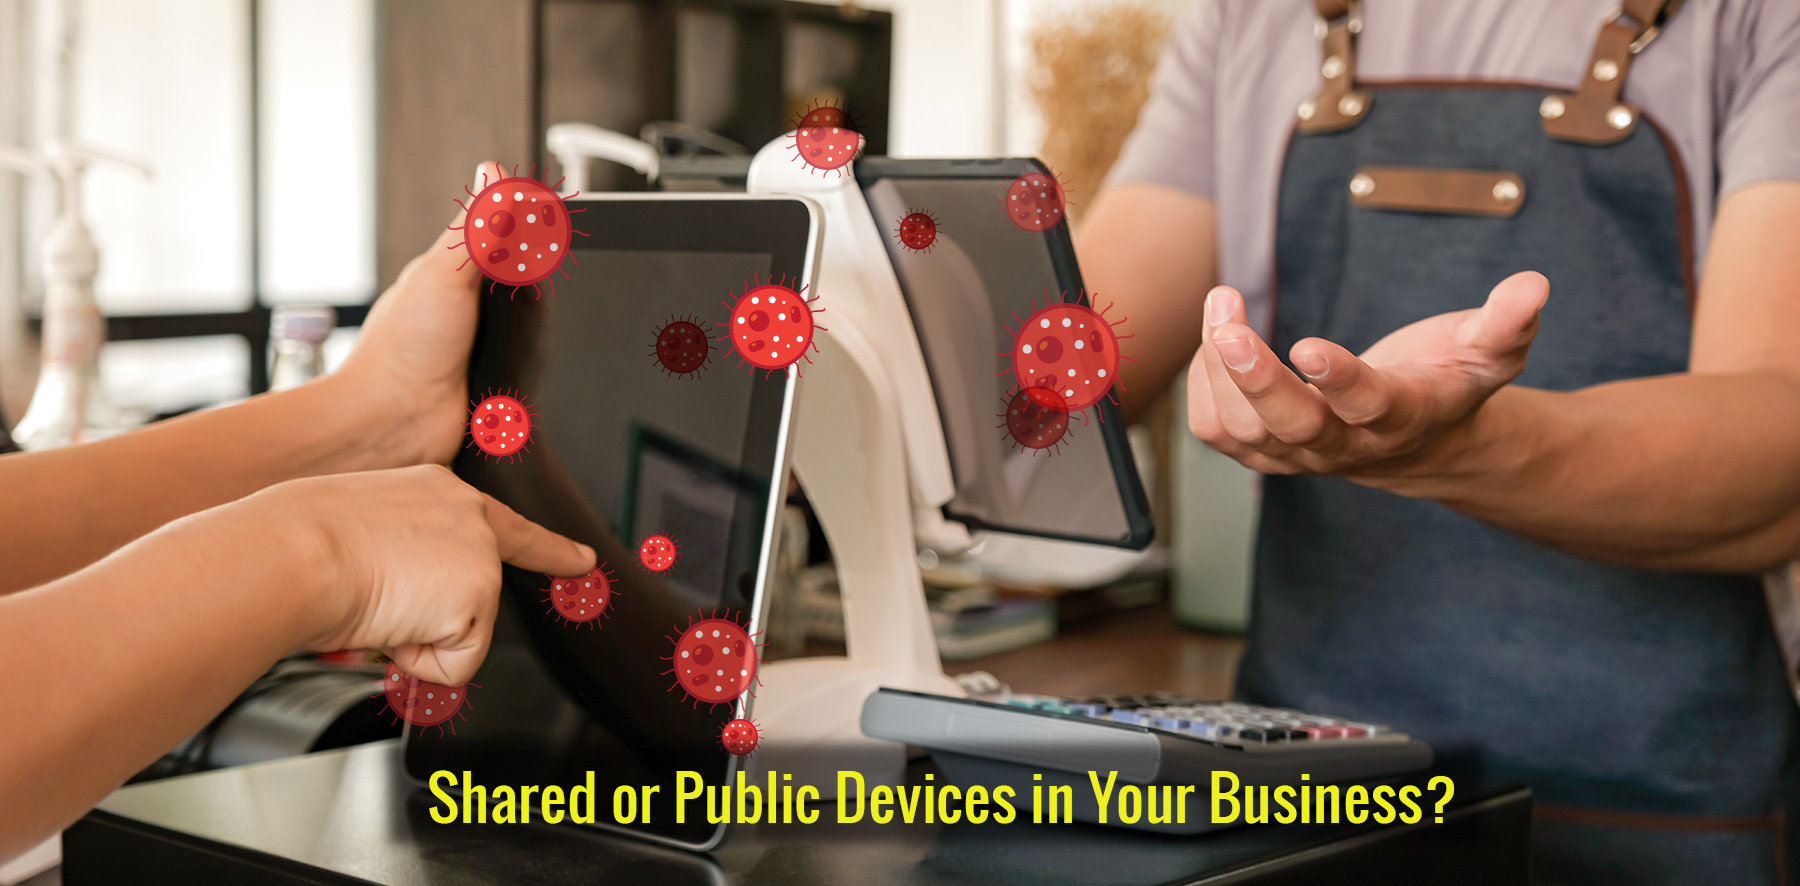 shared devices in businesses can harbor germs